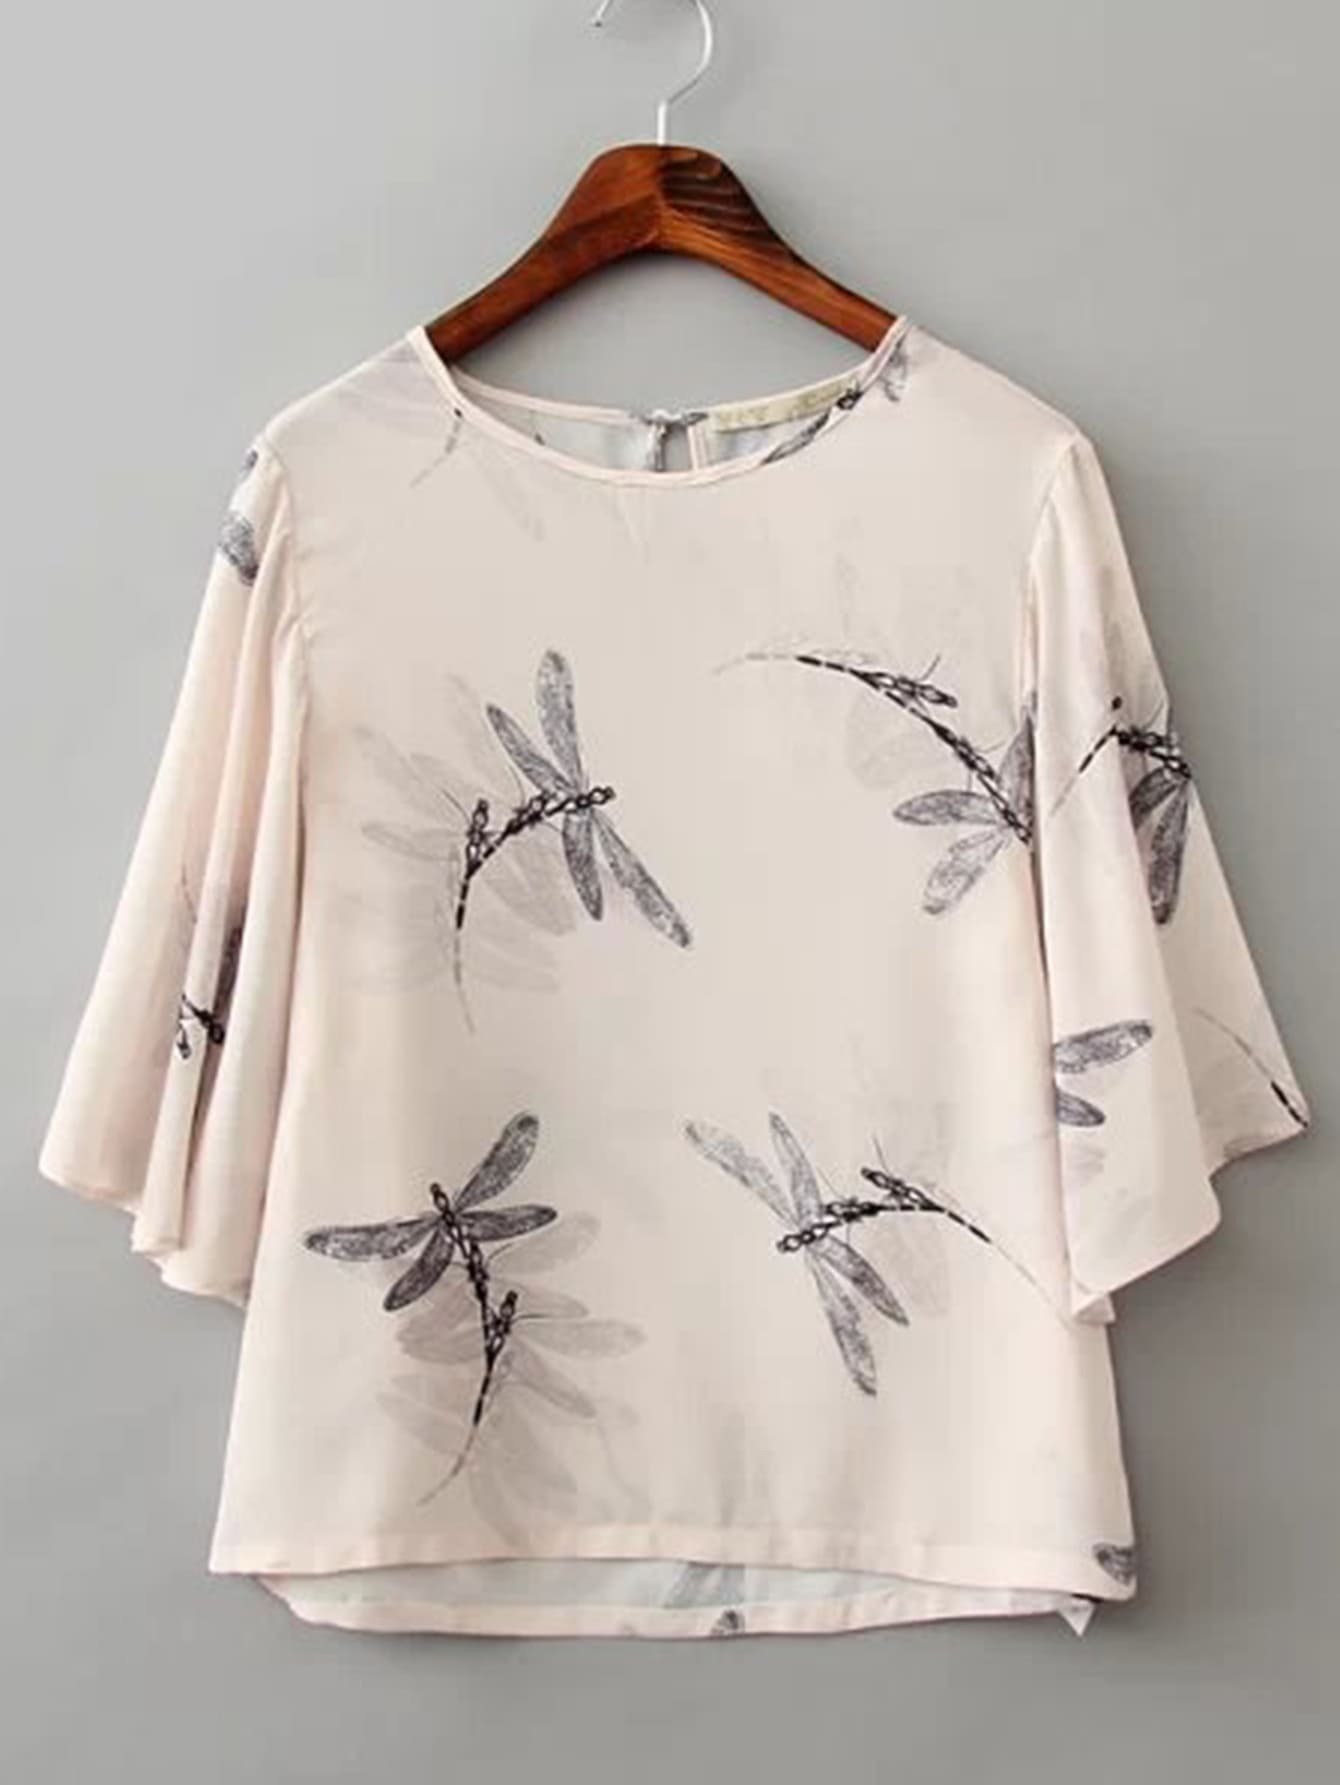 Dragonfly Print Bell Sleeve Top blouse170427204